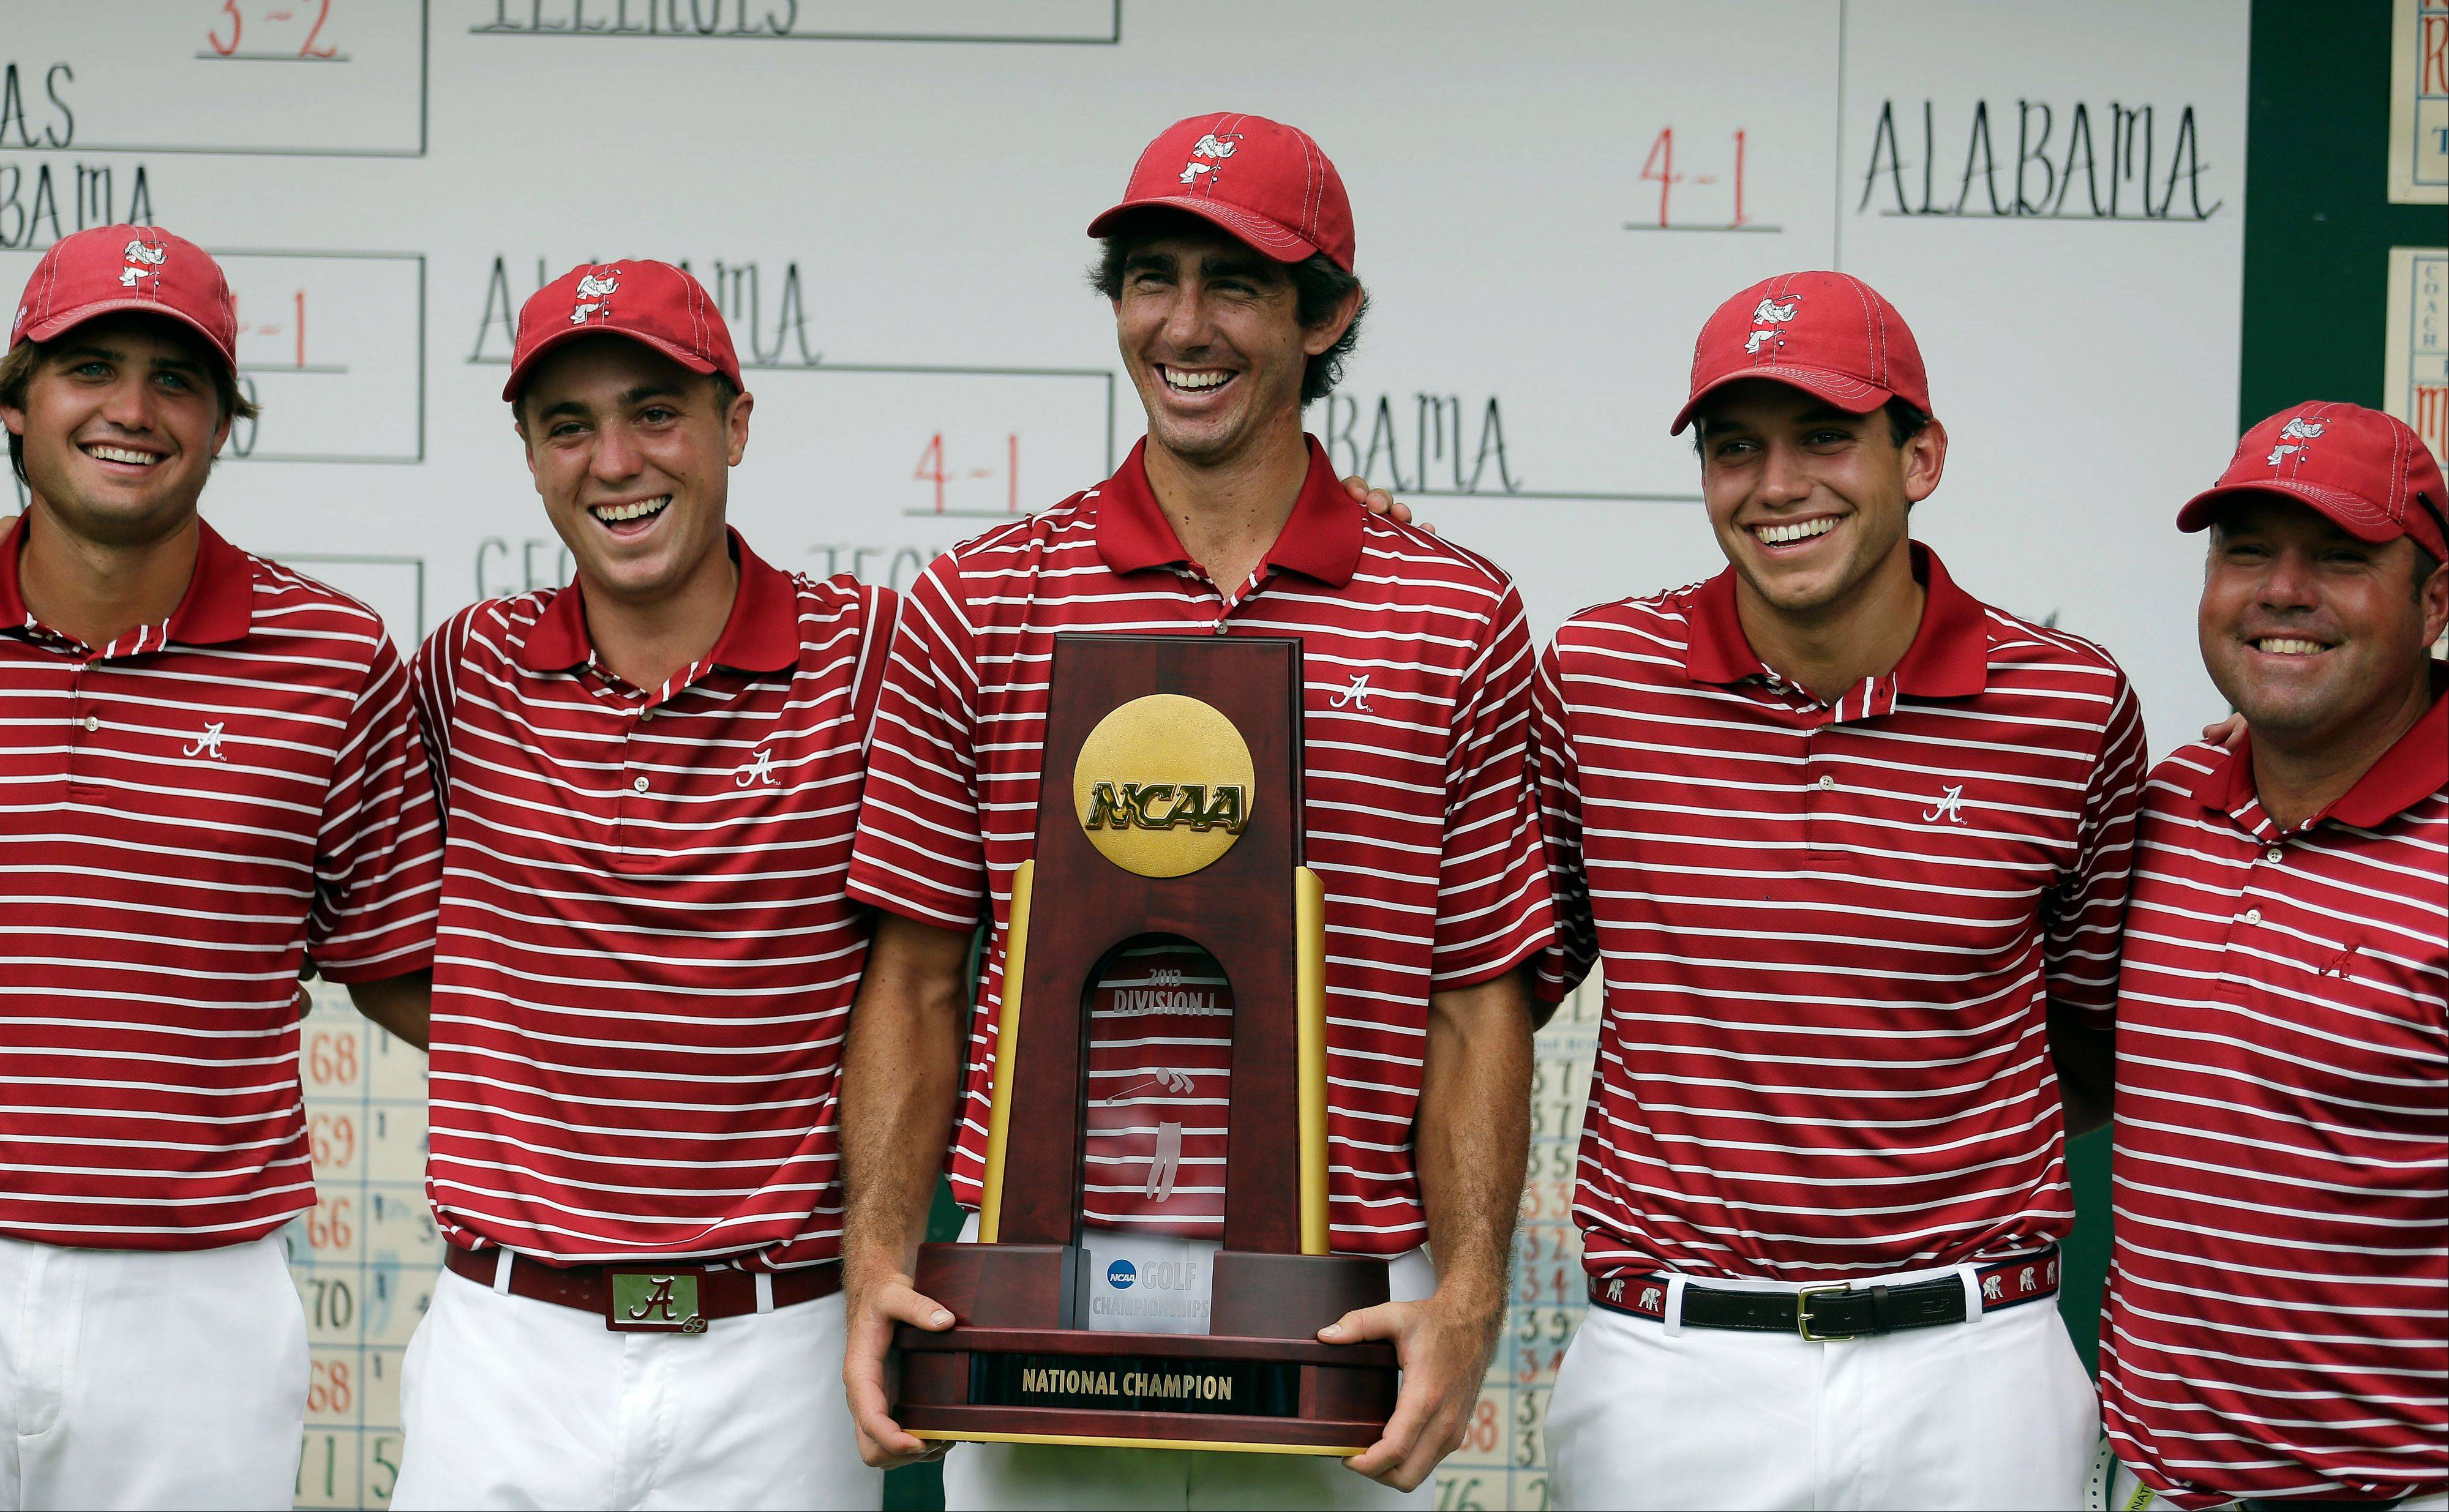 Alabama golfers, from left to right, Bobby Wyatt, Justin Thomas, Scott Strohmeyer, Cory Whitsett and assistant coach Rob Bradley poses with the trophy after defeating Illinois in the final round of play in the NCAA college men's golf championship against Alabama, Sunday, June 2, 2013, in Milton, Ga.